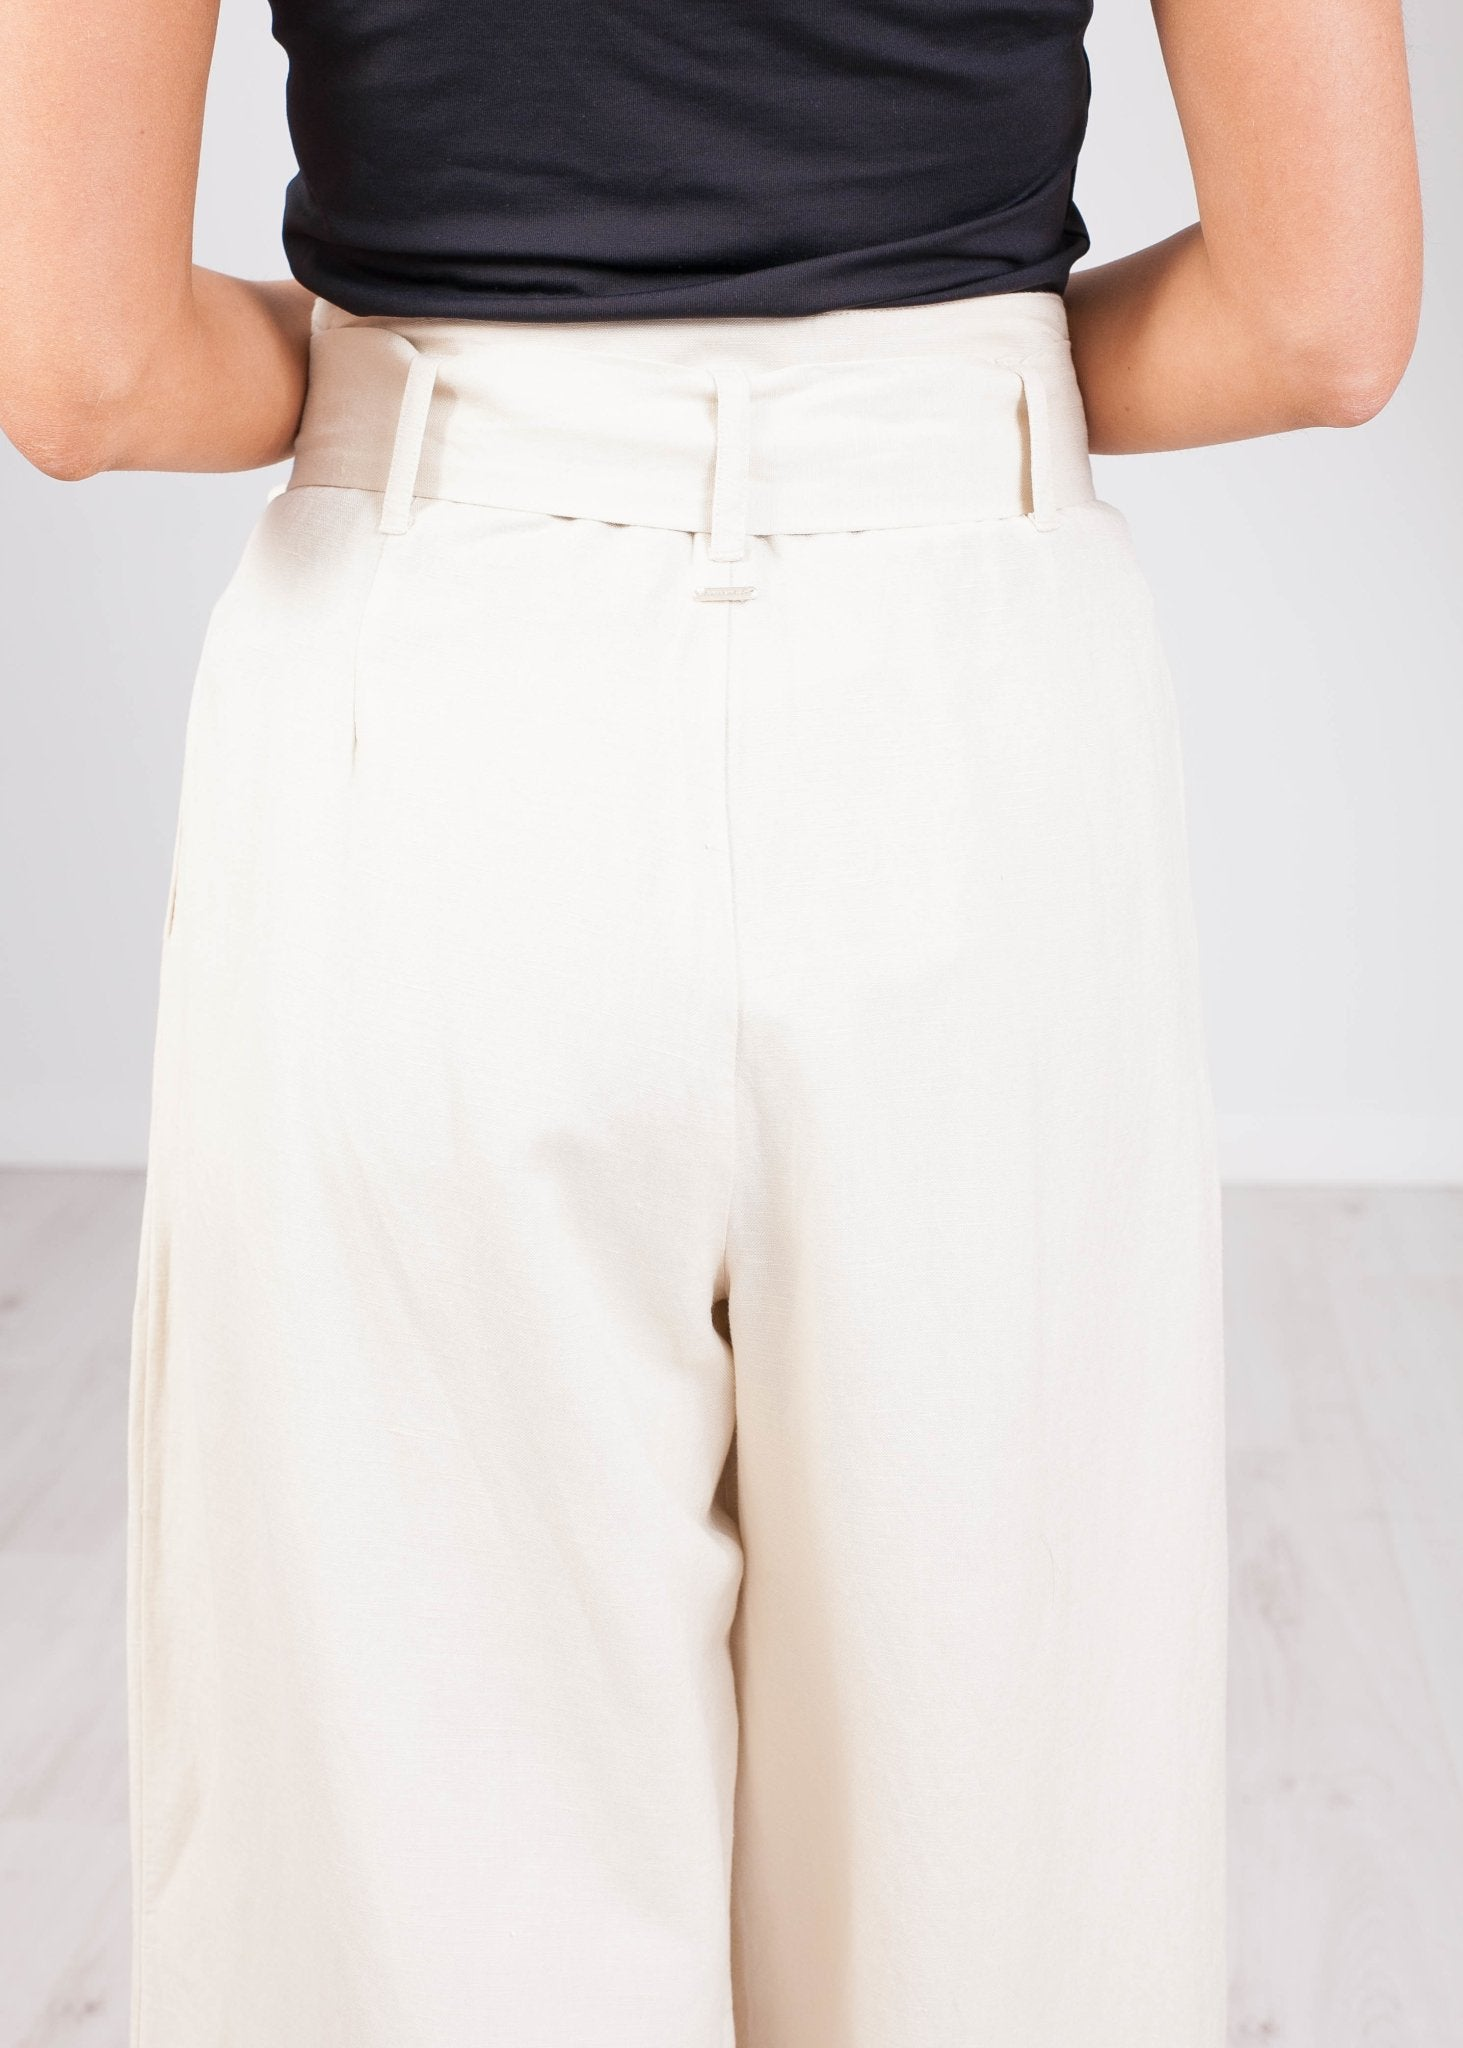 Sophia Cream Culotte Trousers - The Walk in Wardrobe